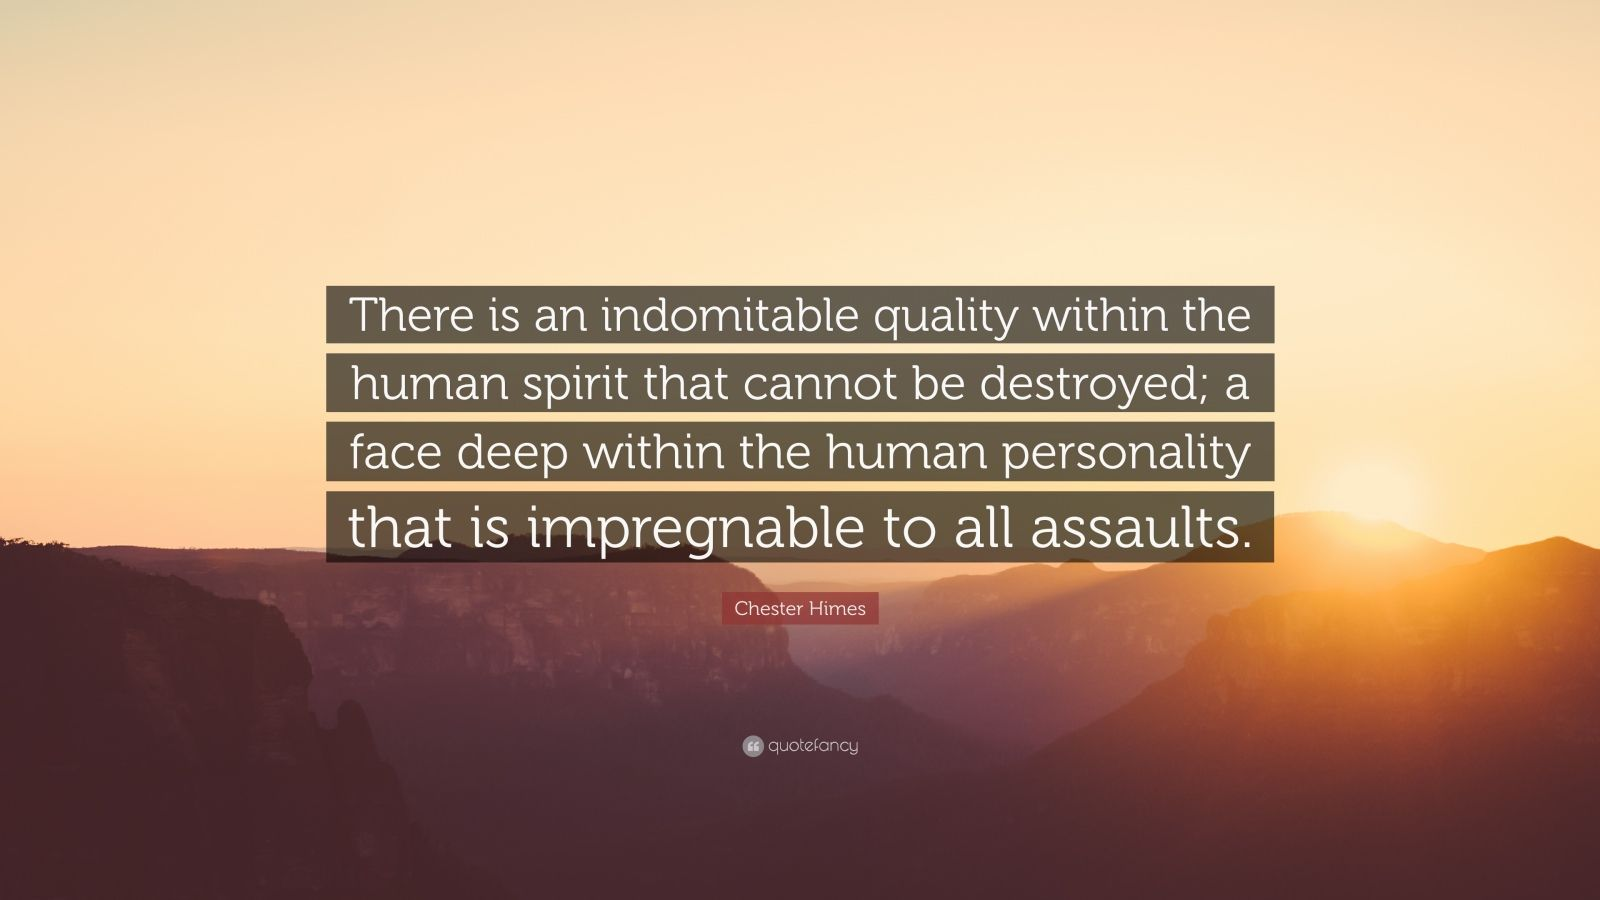 """Chester Himes Quote: """"There is an indomitable quality within the human spirit that cannot be destroyed; a face deep within the human personality that is impregnable to all assaults."""""""